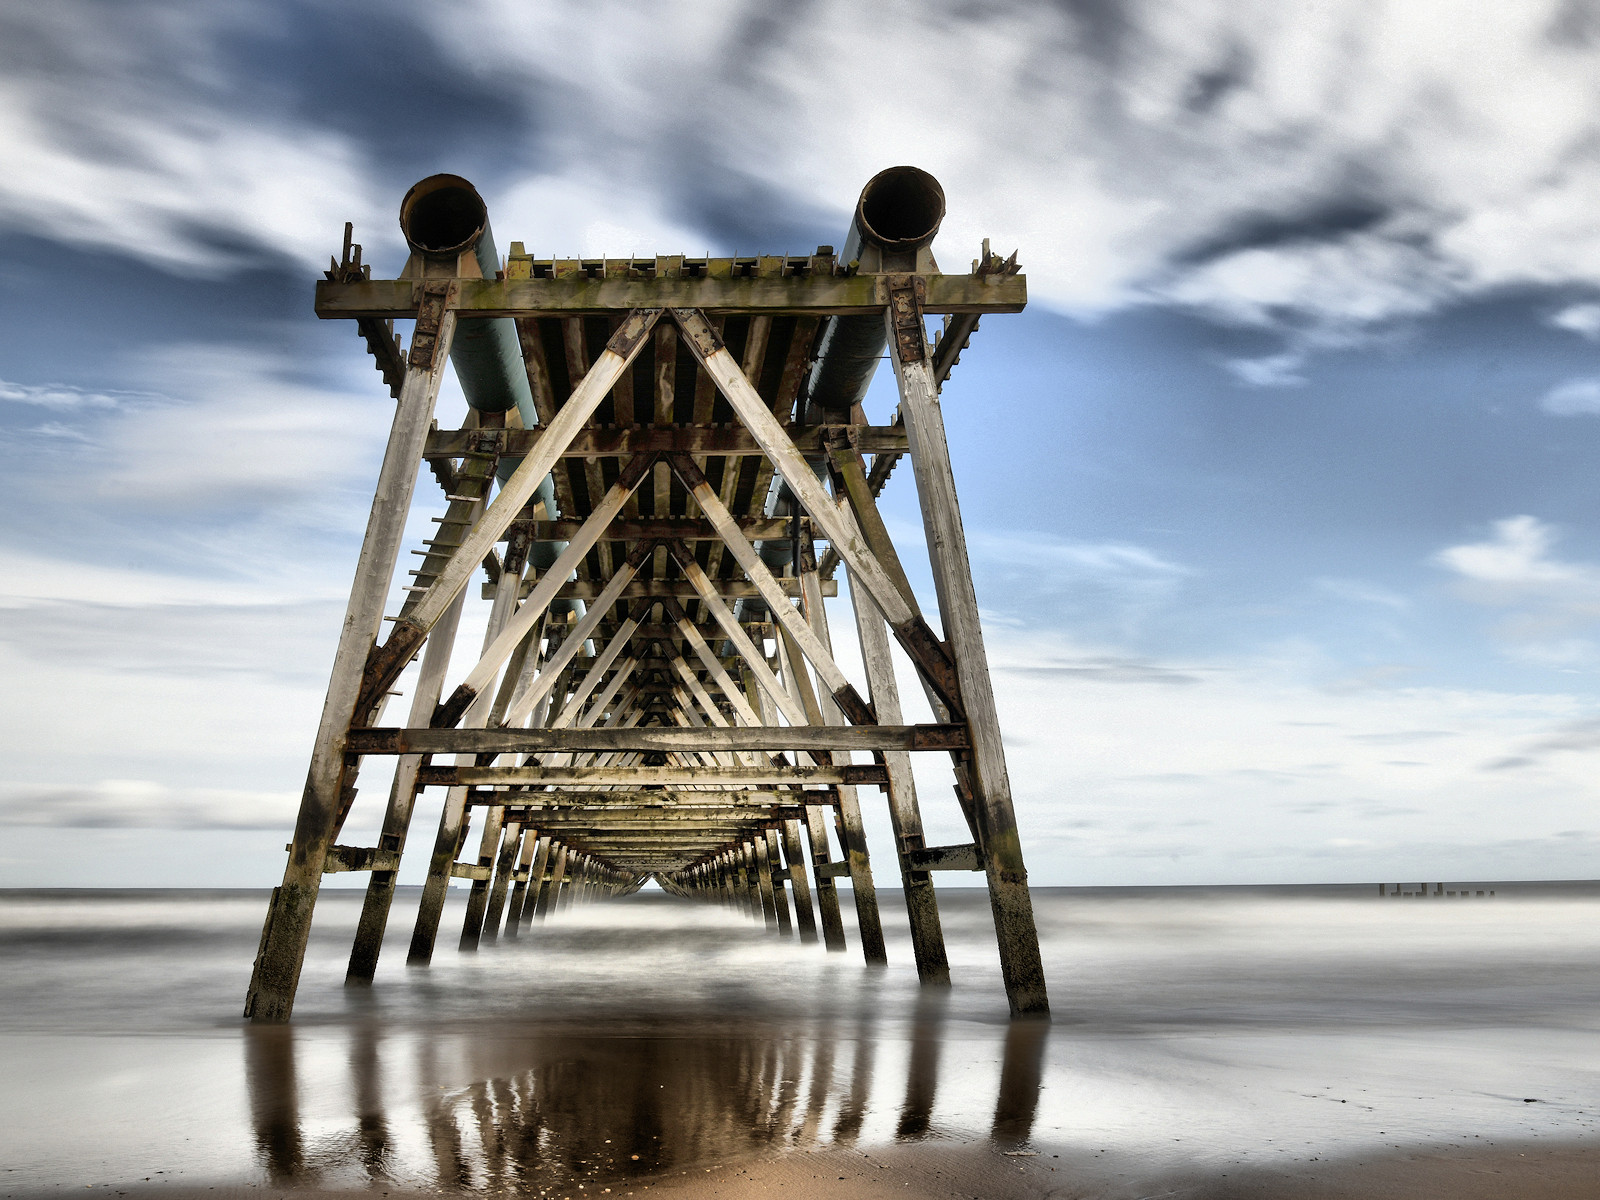 PDI - Steetley Pier by Joe Beattie (10 marks)